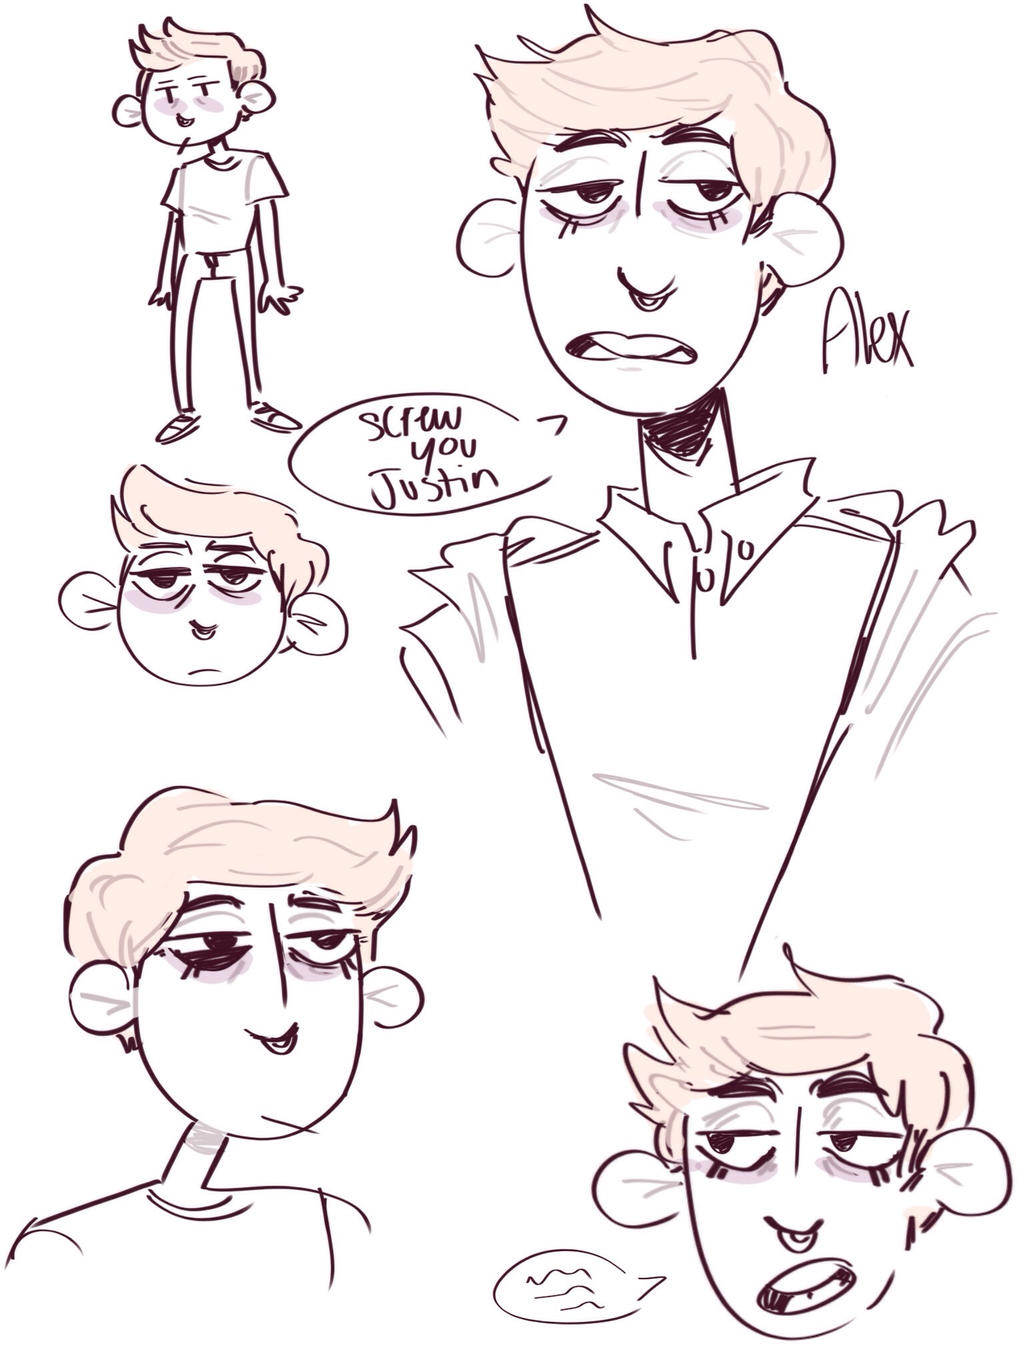 More of,, the man  by Pixiepann